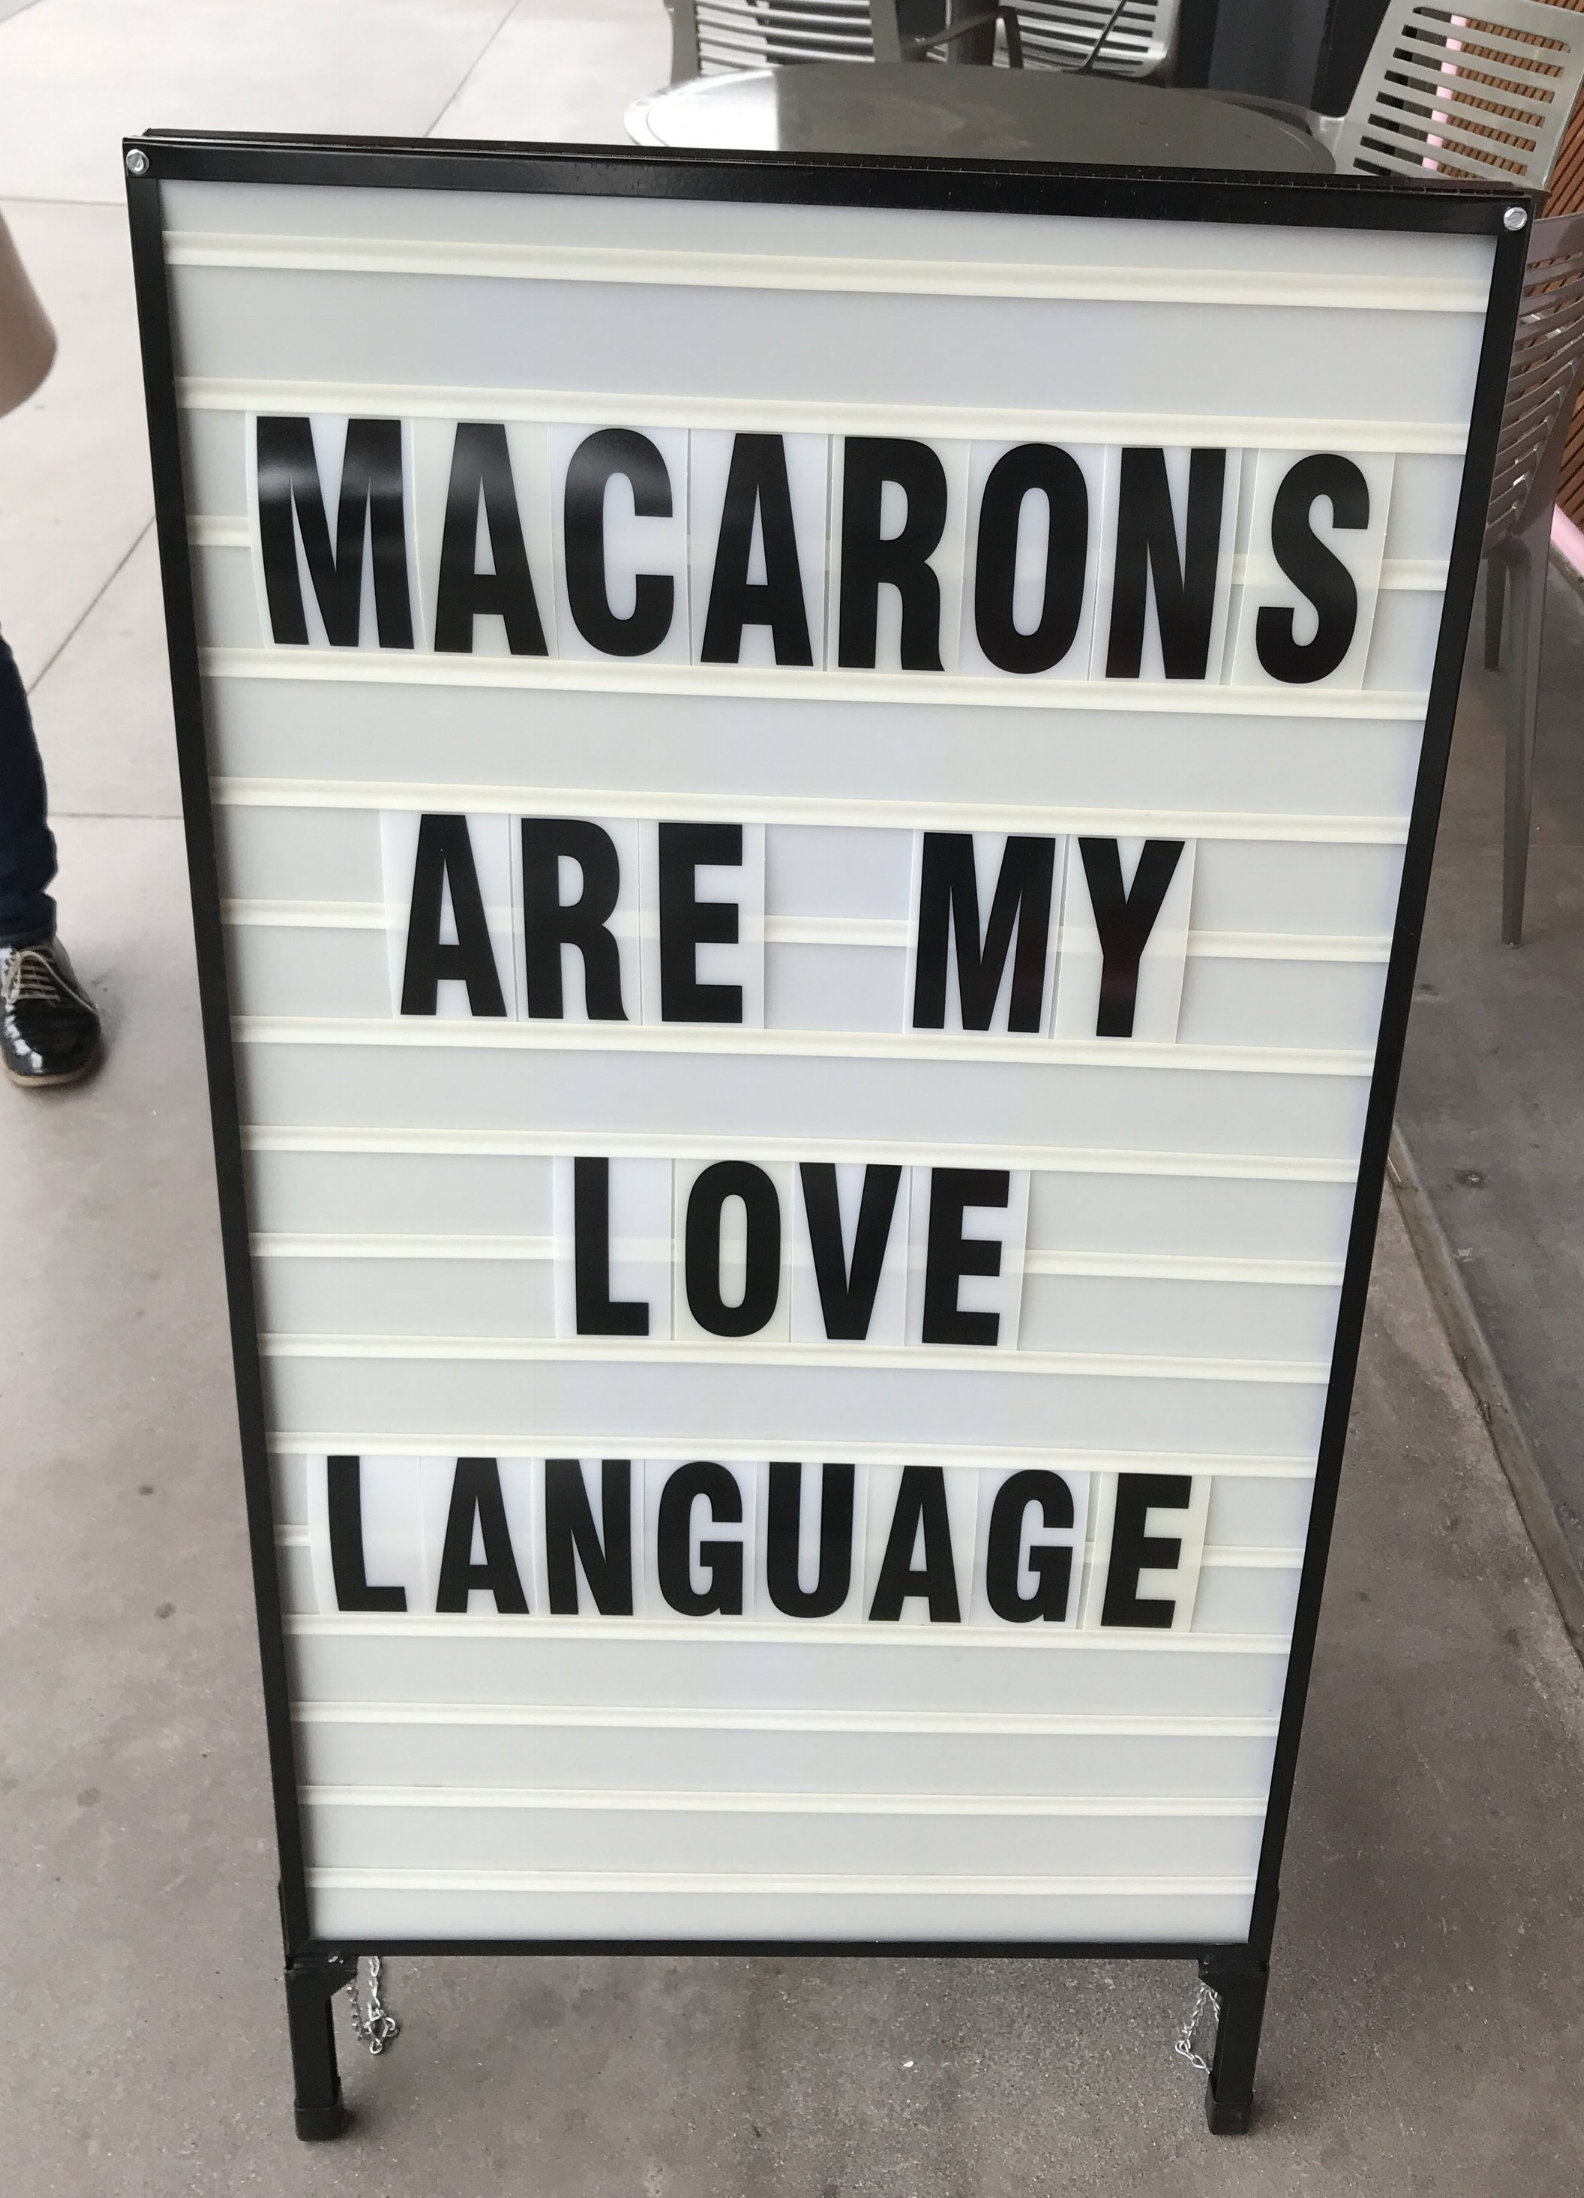 Sign outside the store